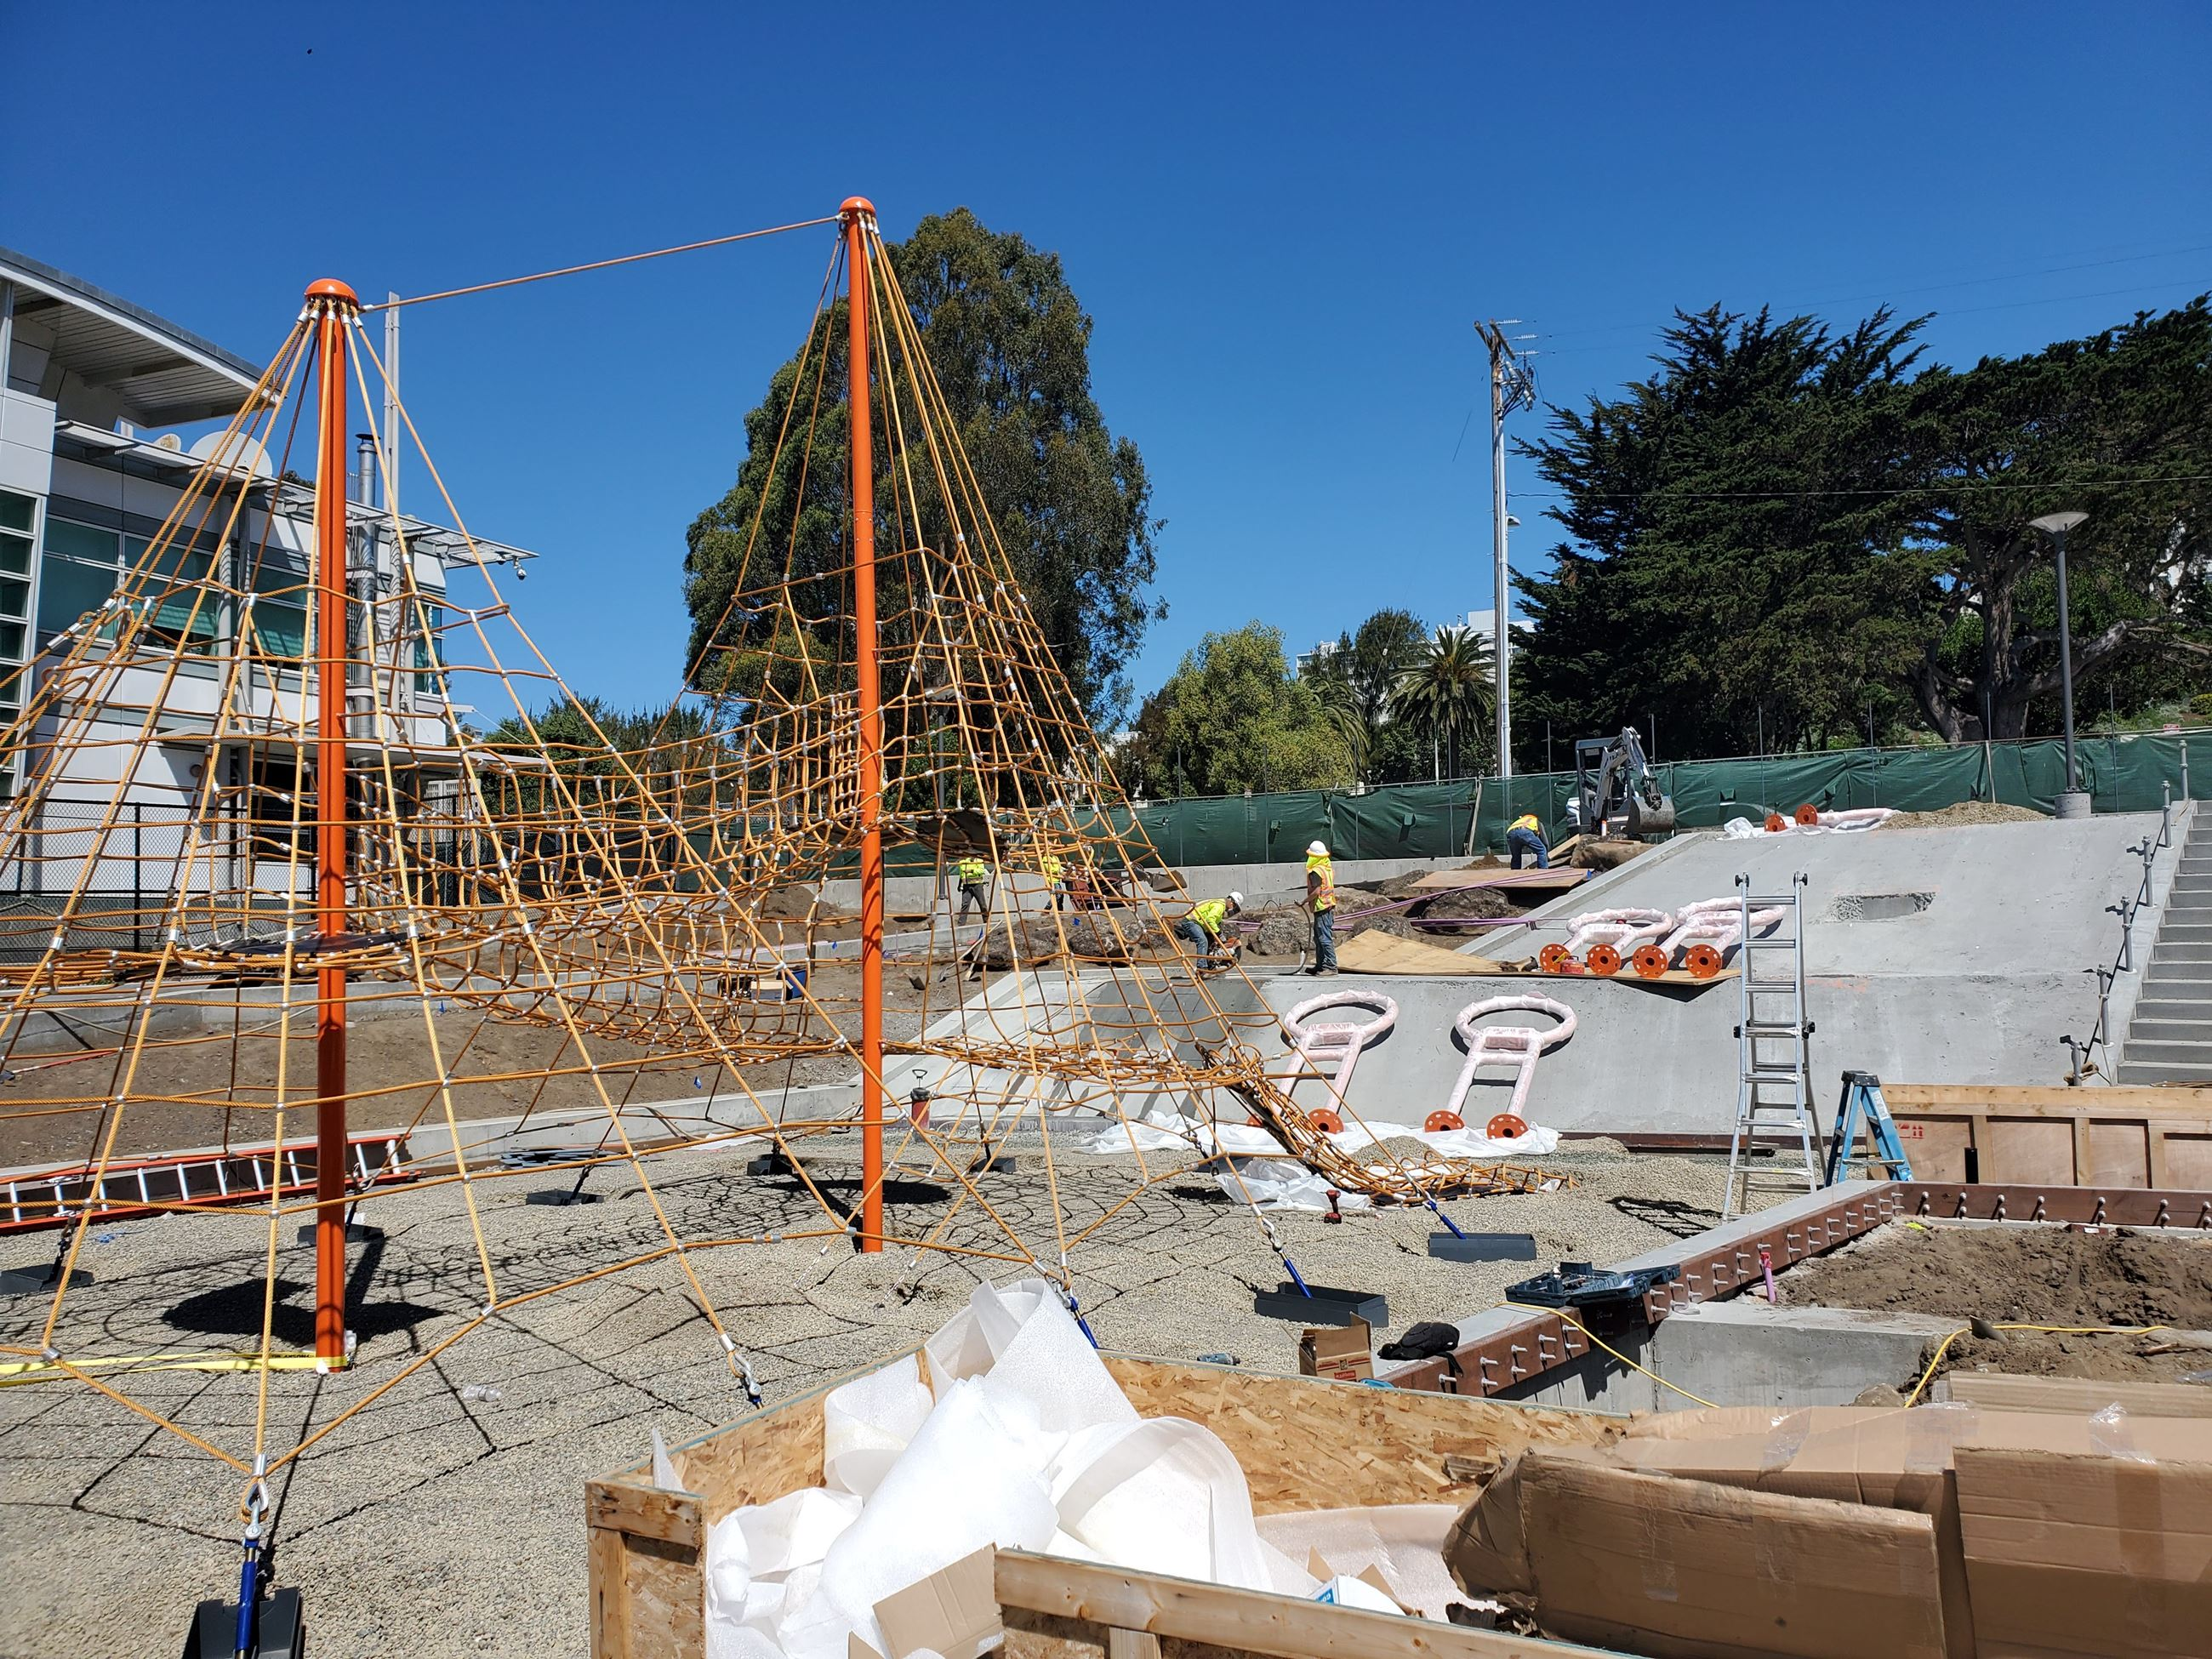 Margaret Hayward red playground structure being newly installed. The structure is centered on gravel